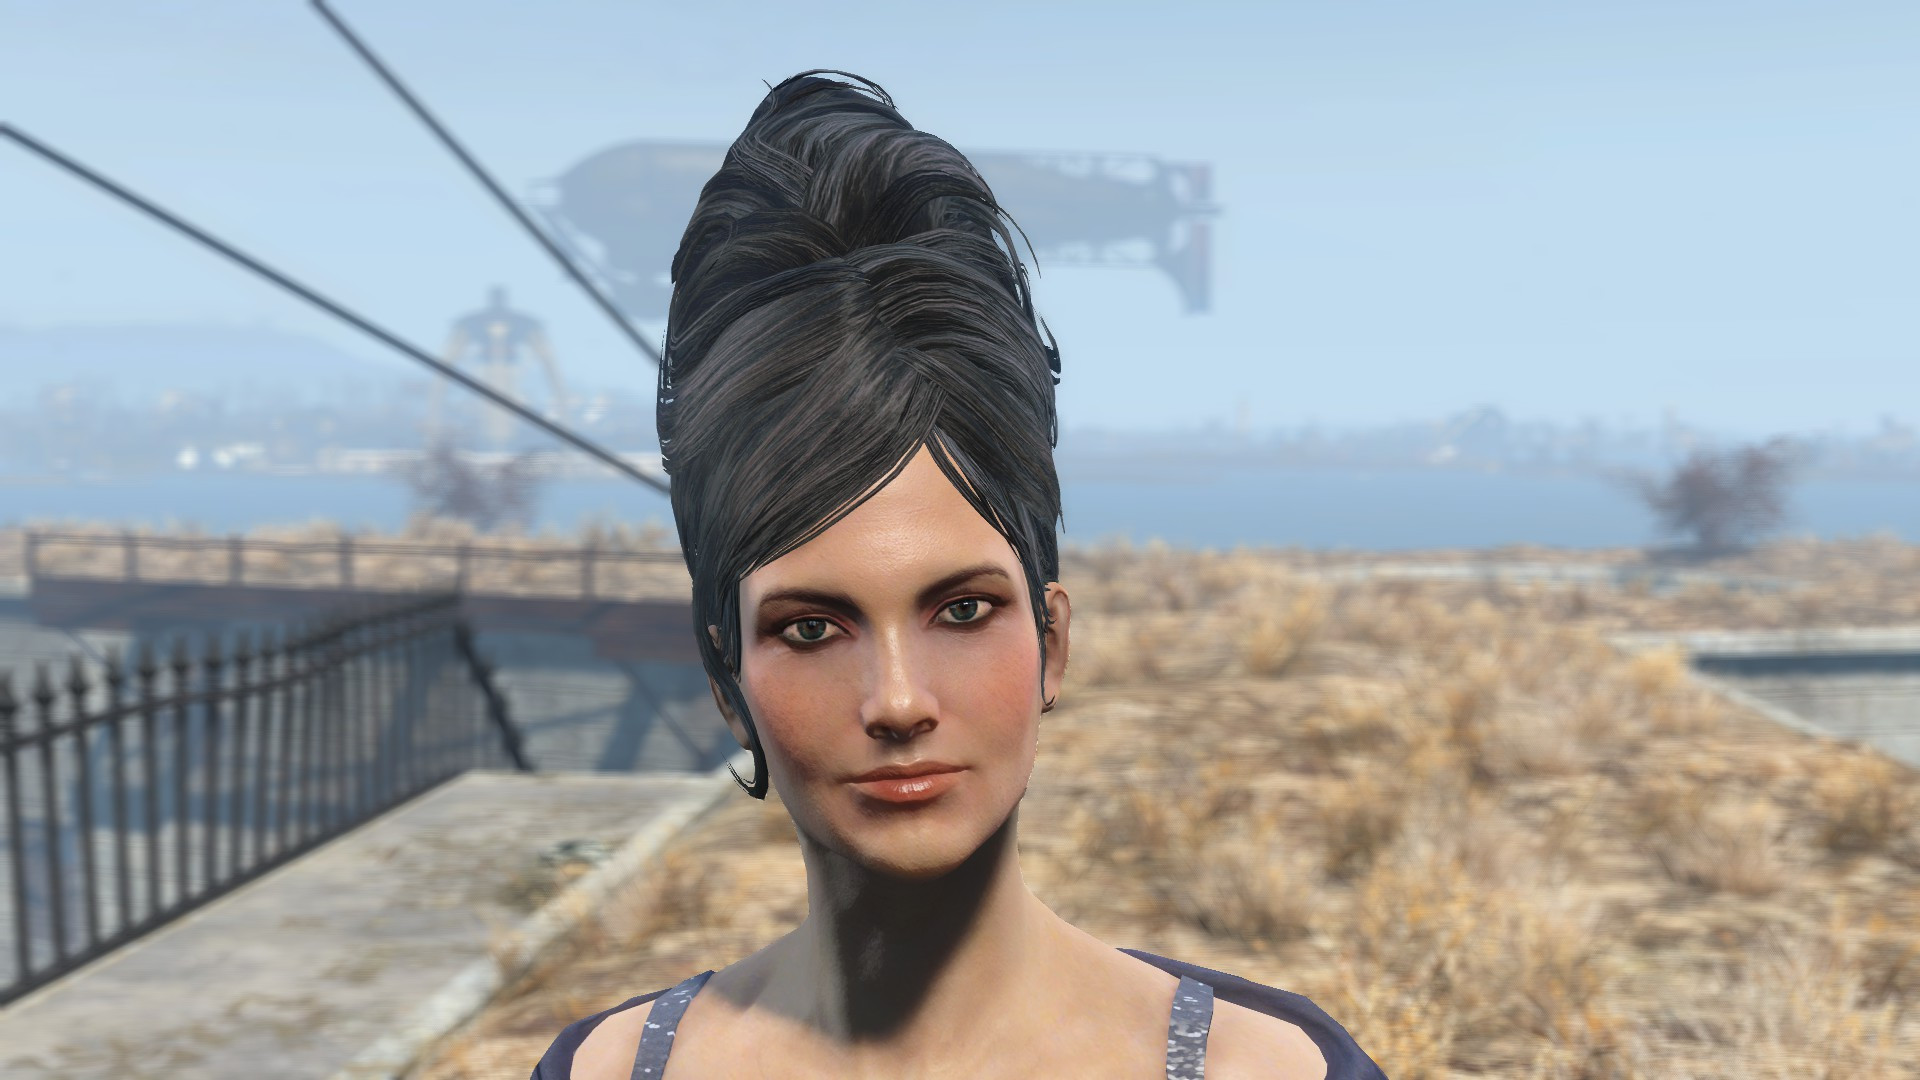 Fallout 4 Female Hairstyles  panion Hairstyle Selection Fallout 4 Mod